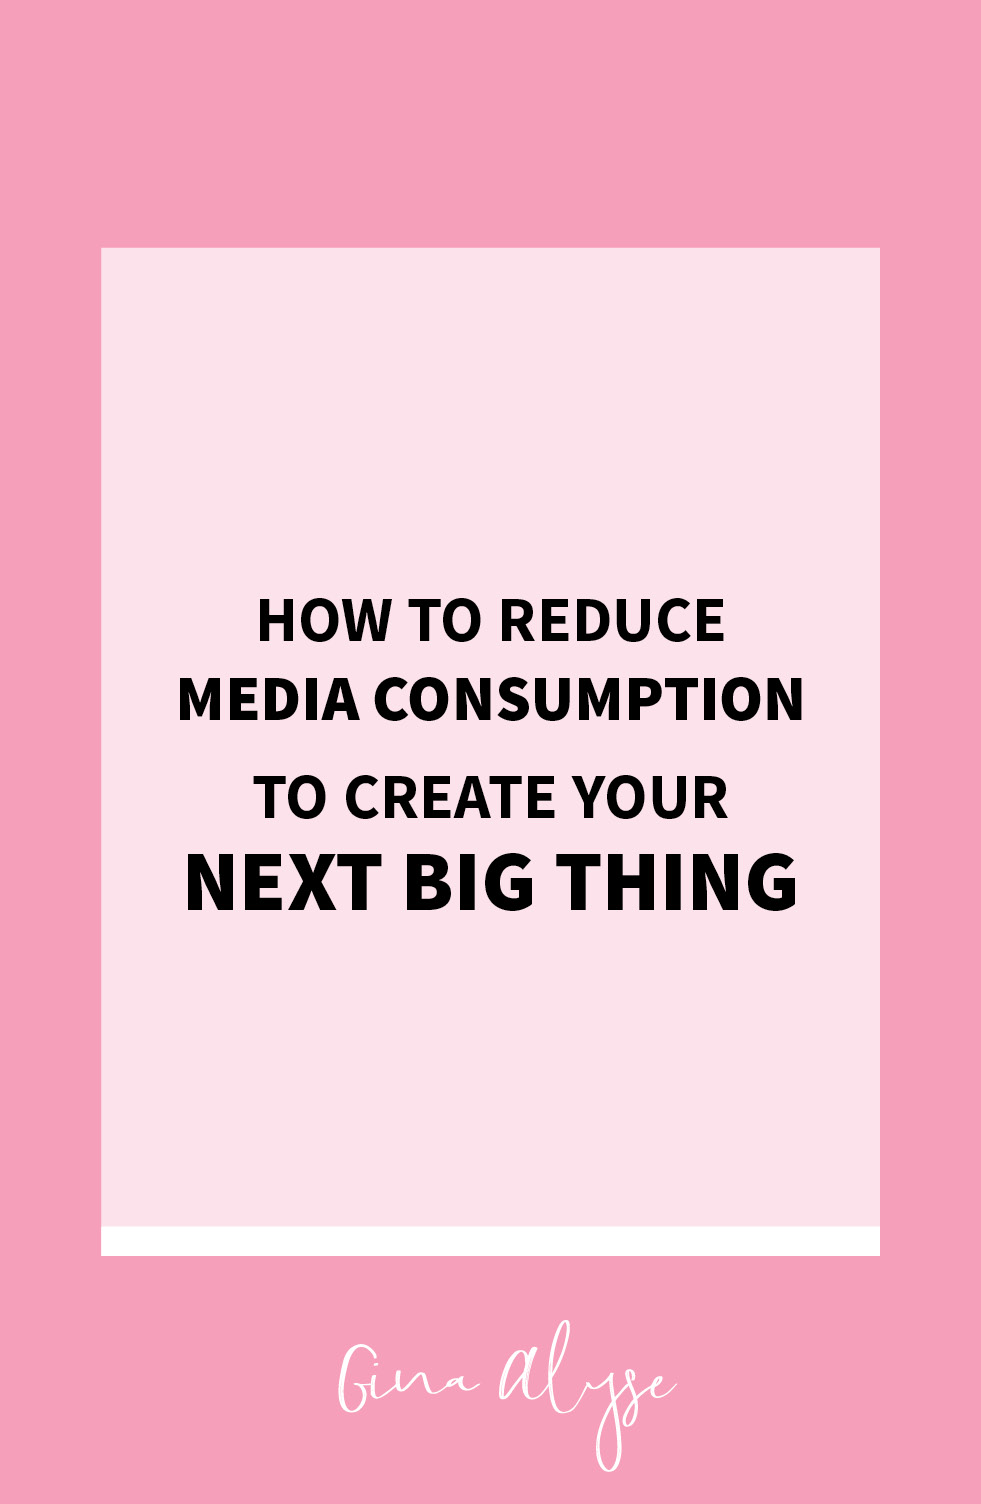 How to Reduce Media Consumption